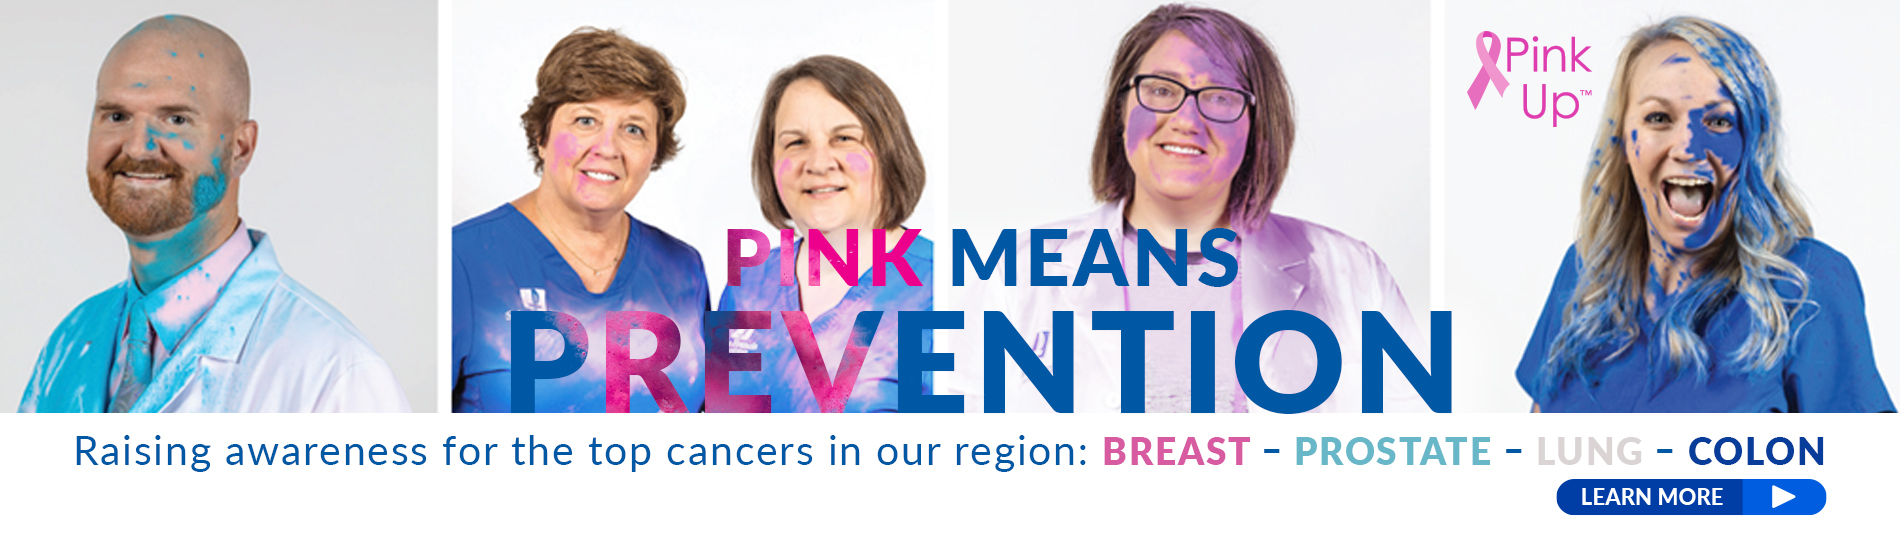 Pink Up - Pink Means Prevention!